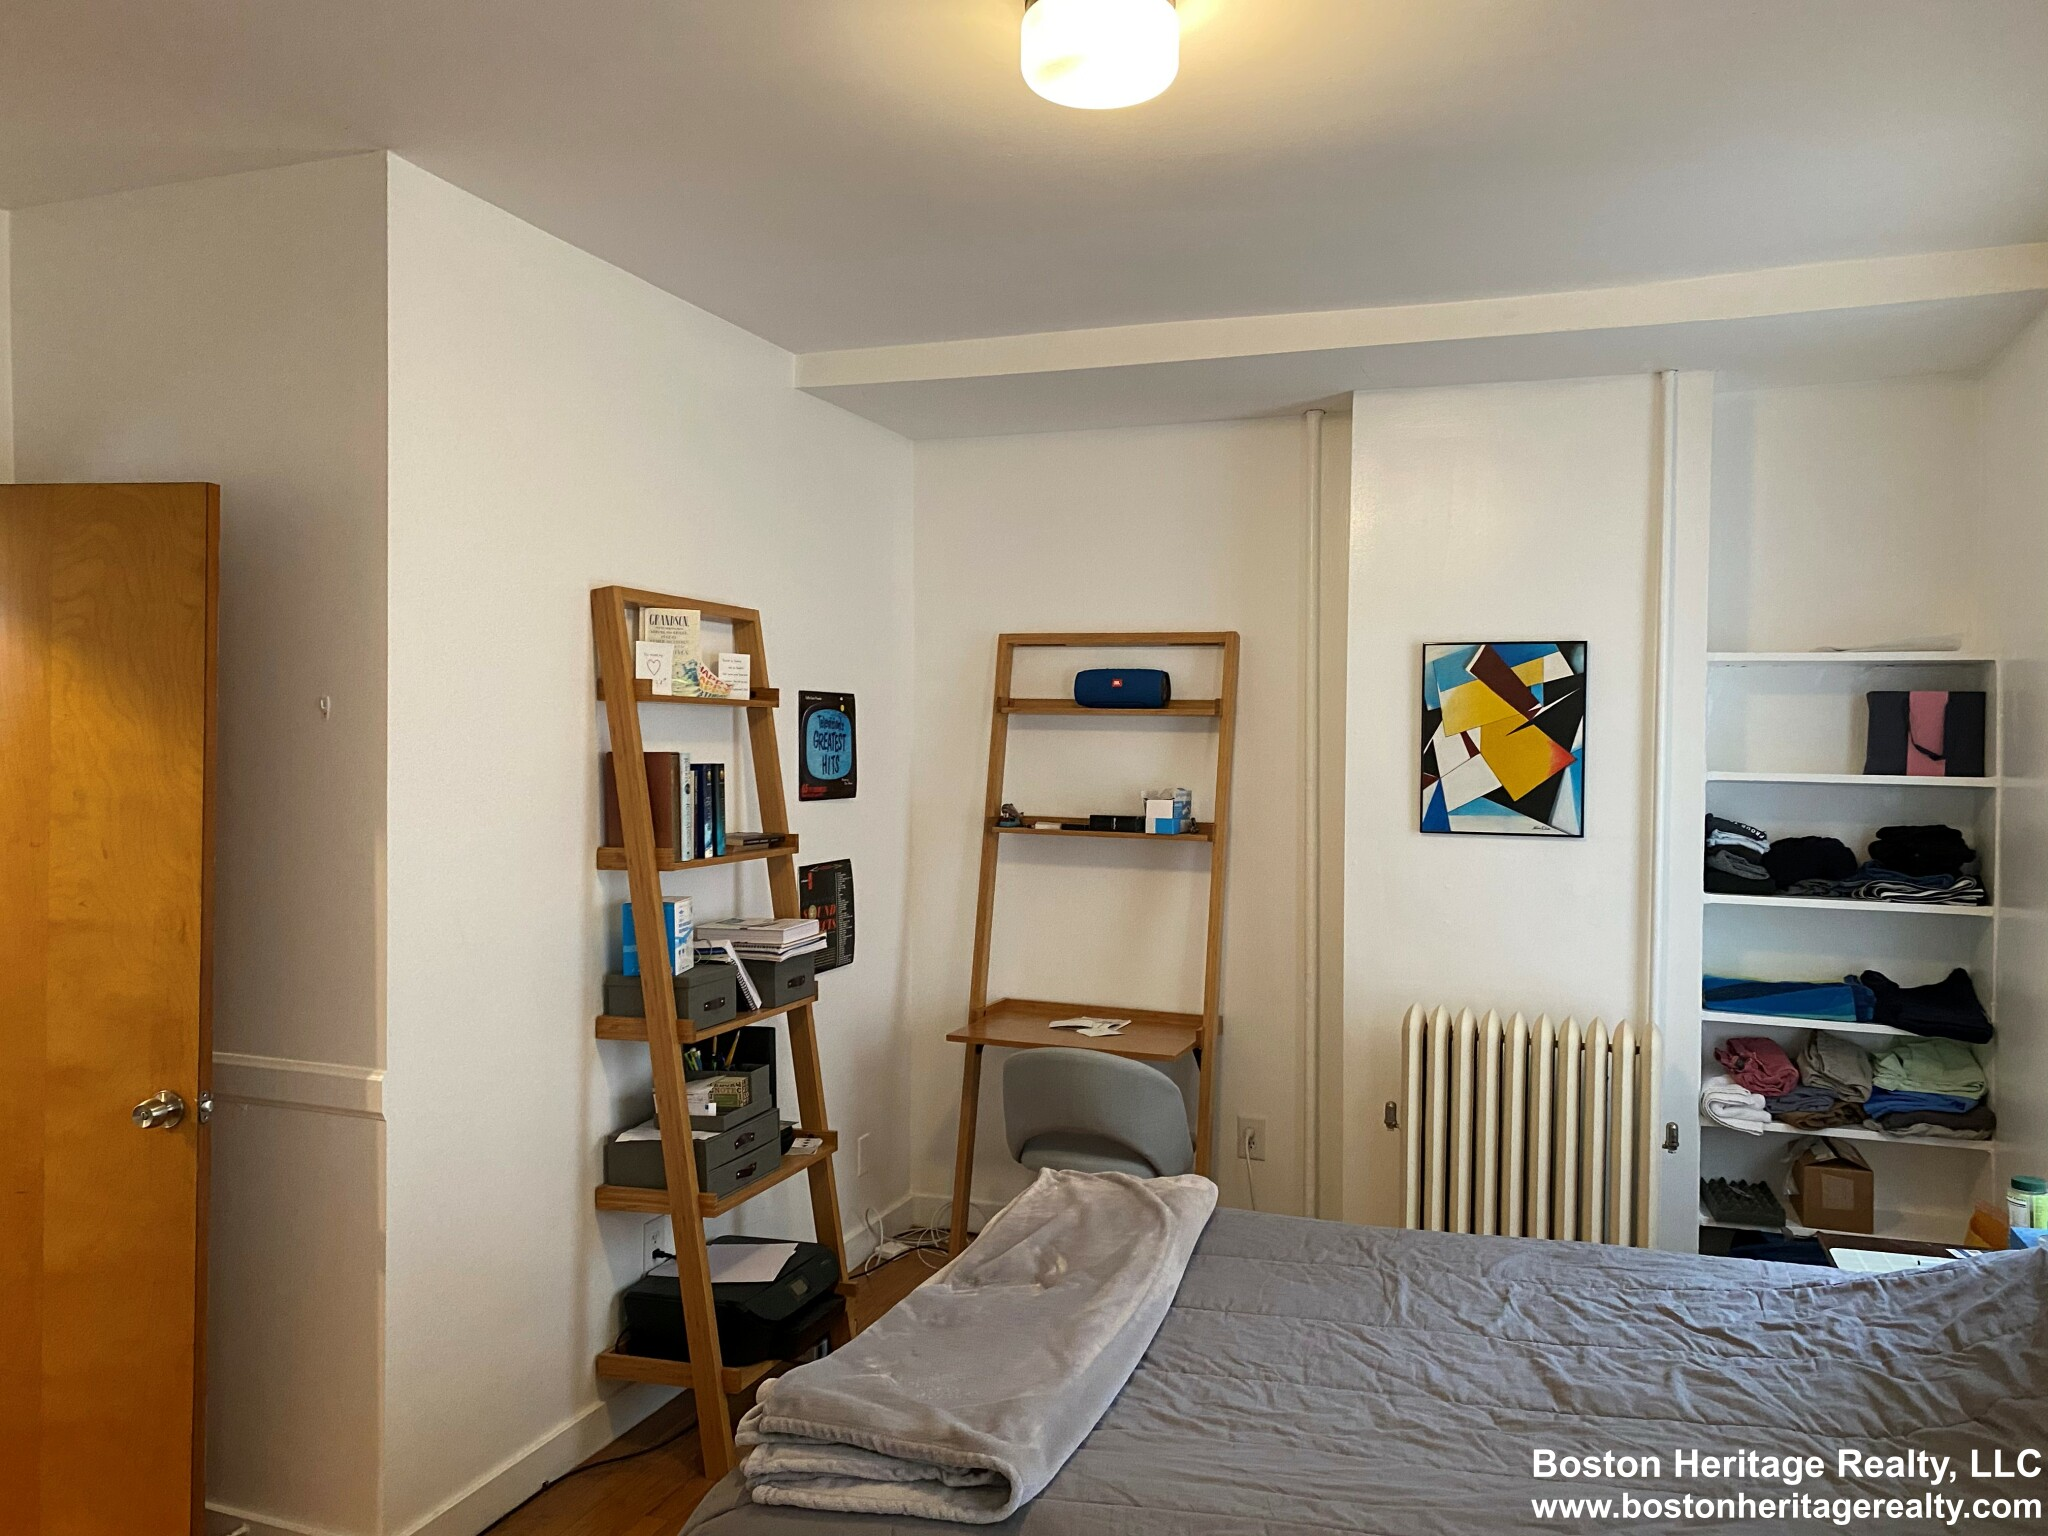 1 Bed, 1 Bath apartment in Boston, Fenway for $1,850